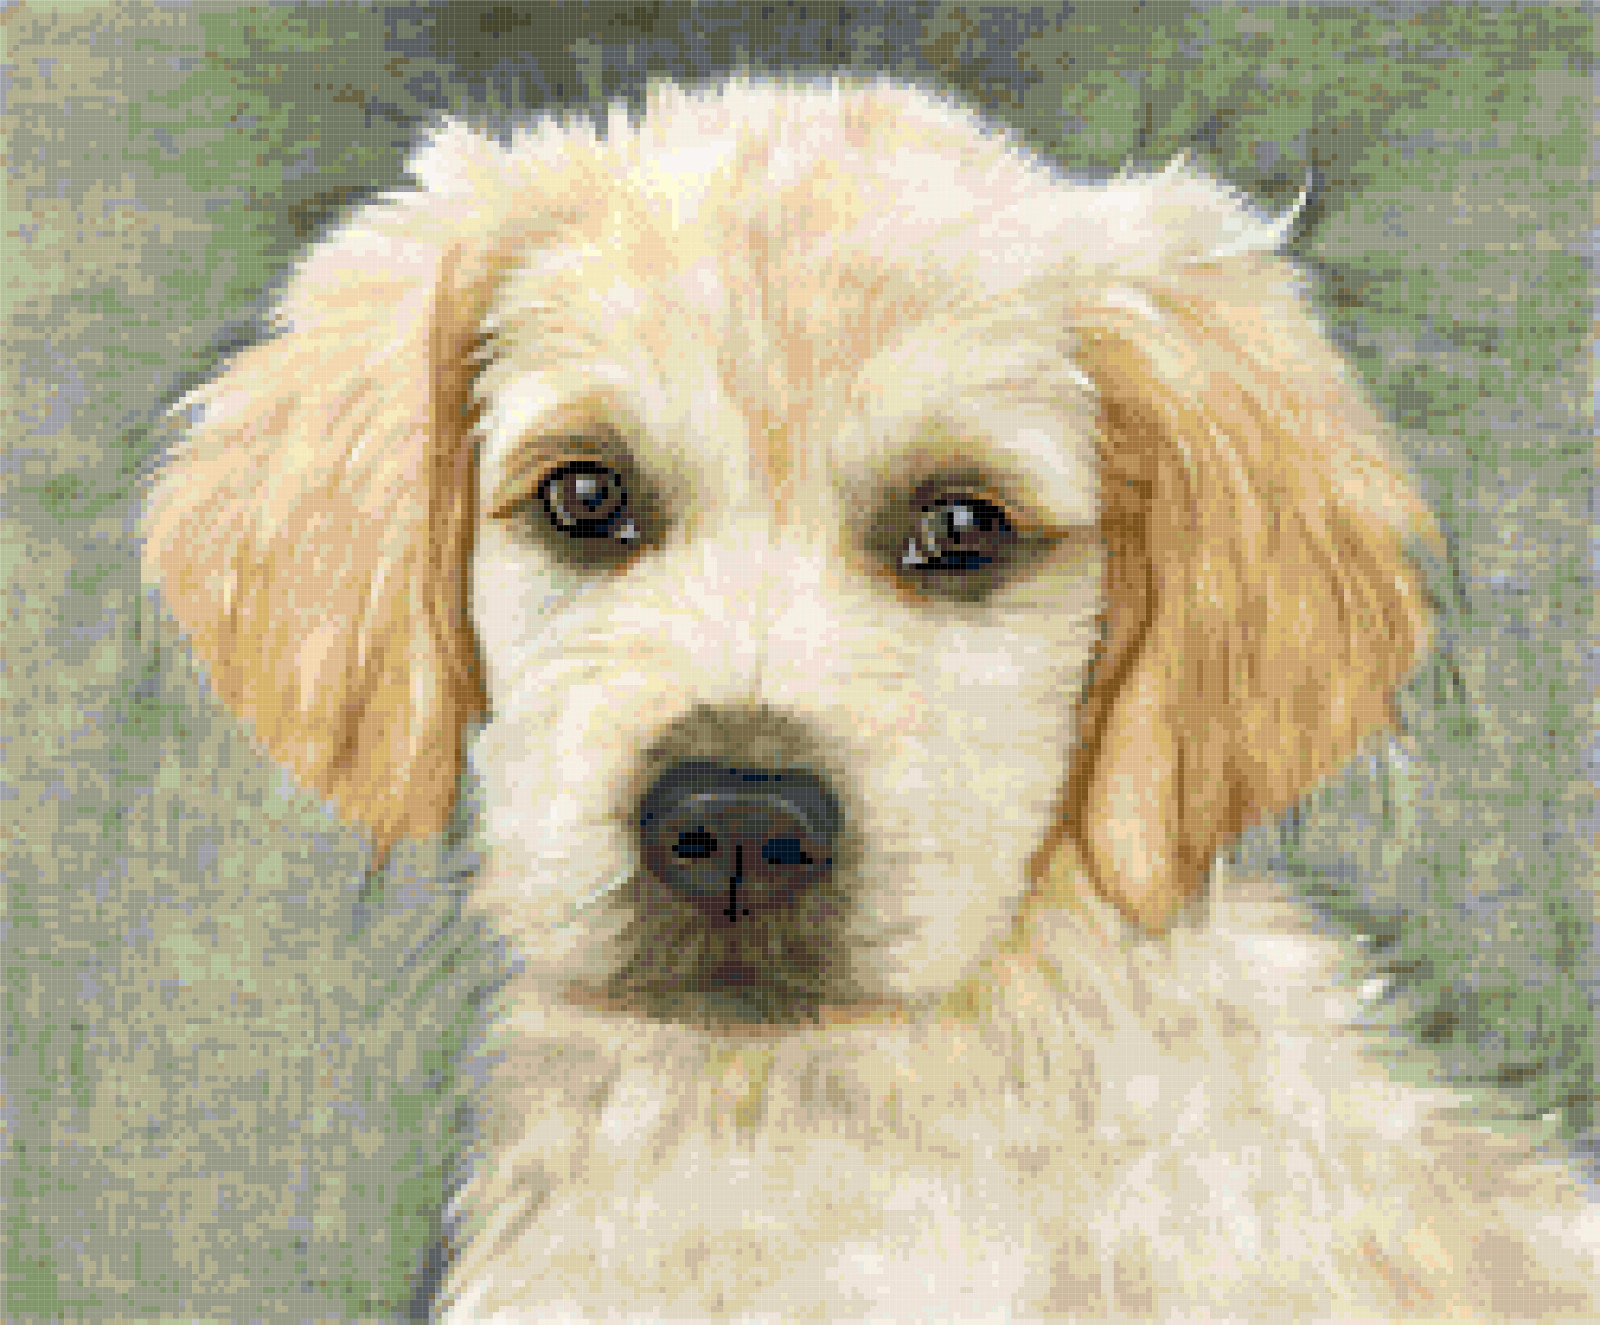 golden retriever cross stitch image